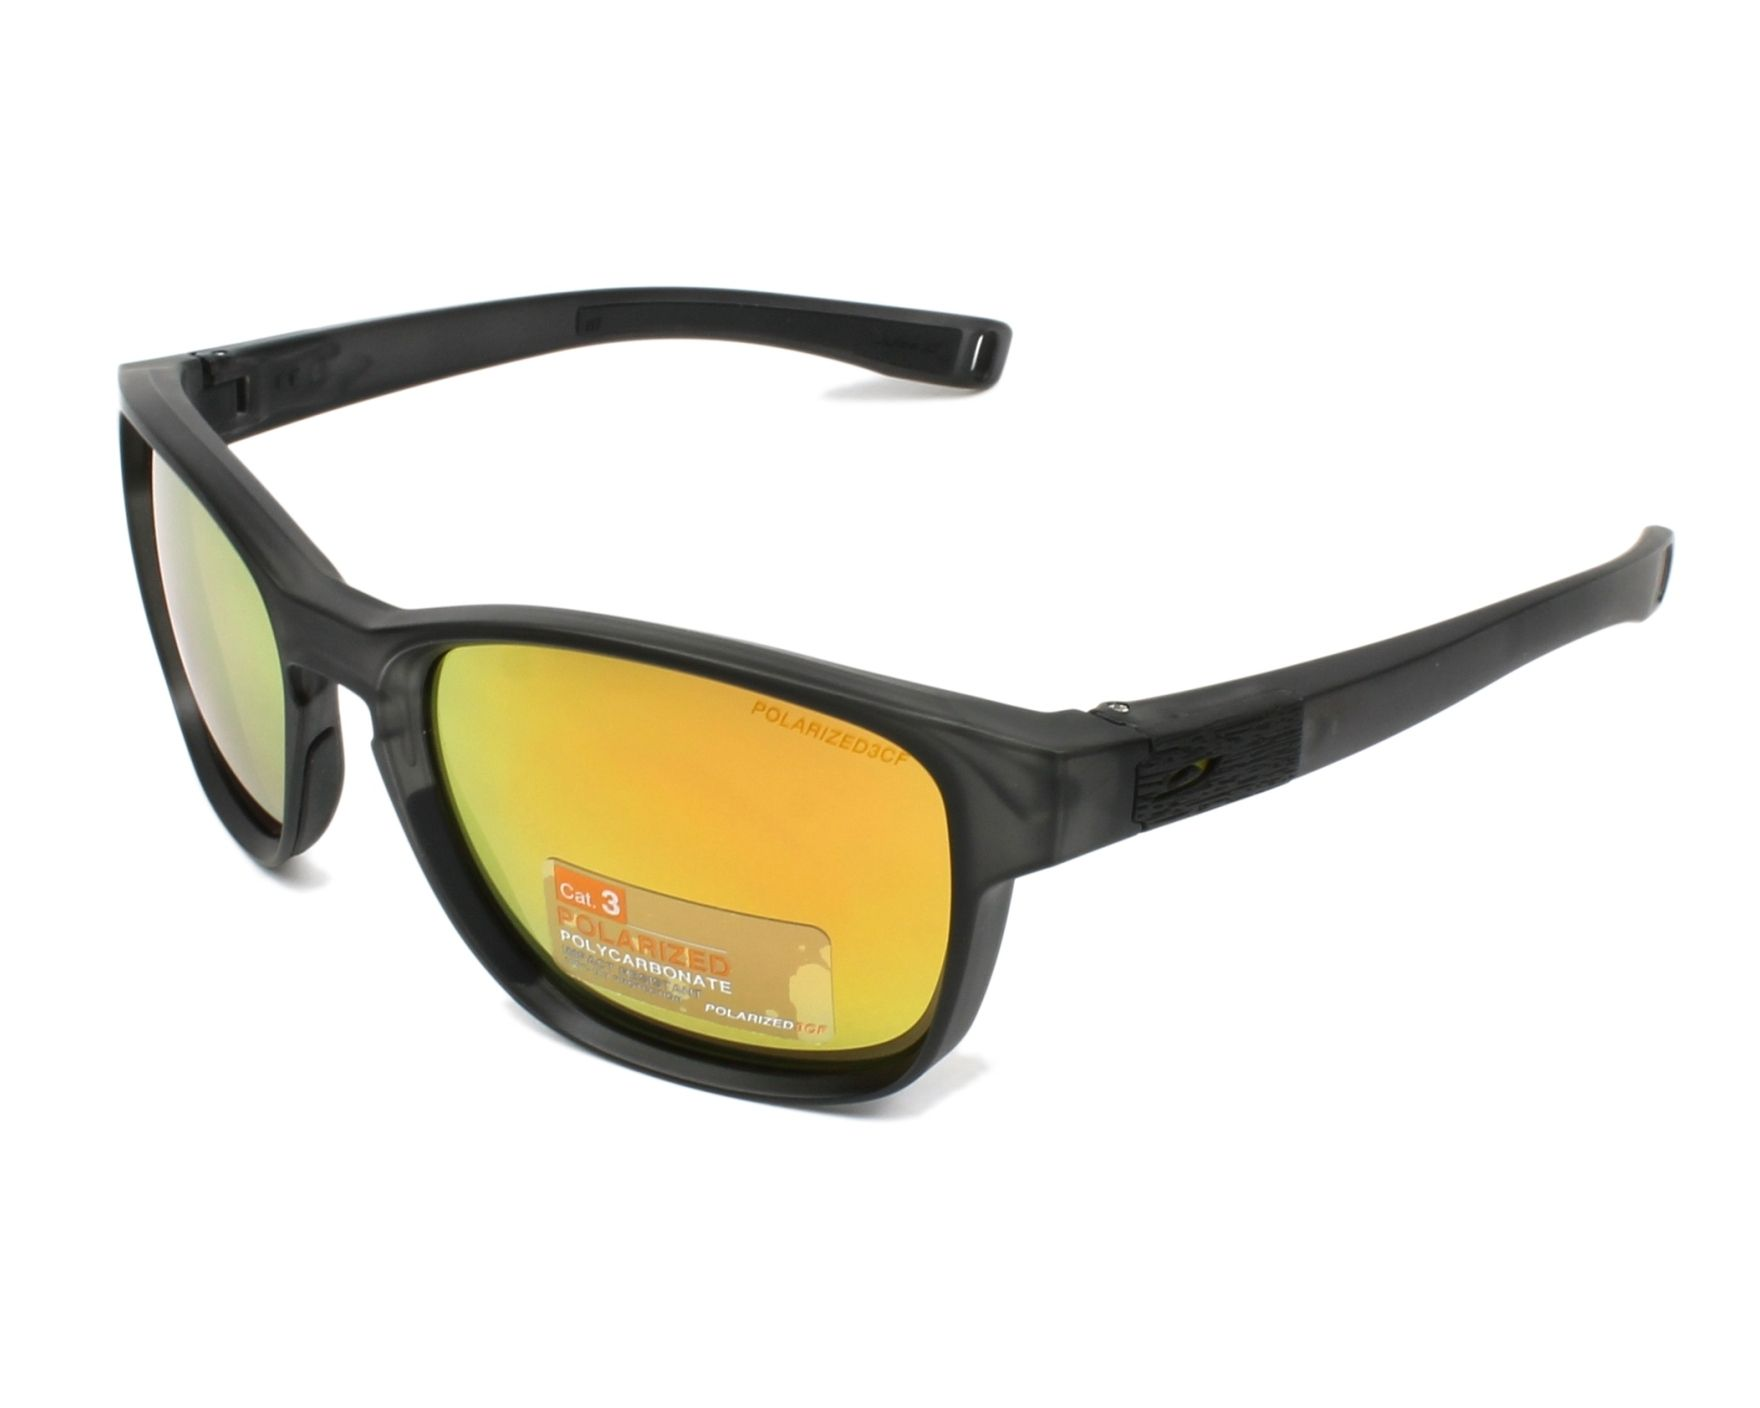 d85f5d5b0a188 Sunglasses Julbo J504 9414 57-18 Black profile view